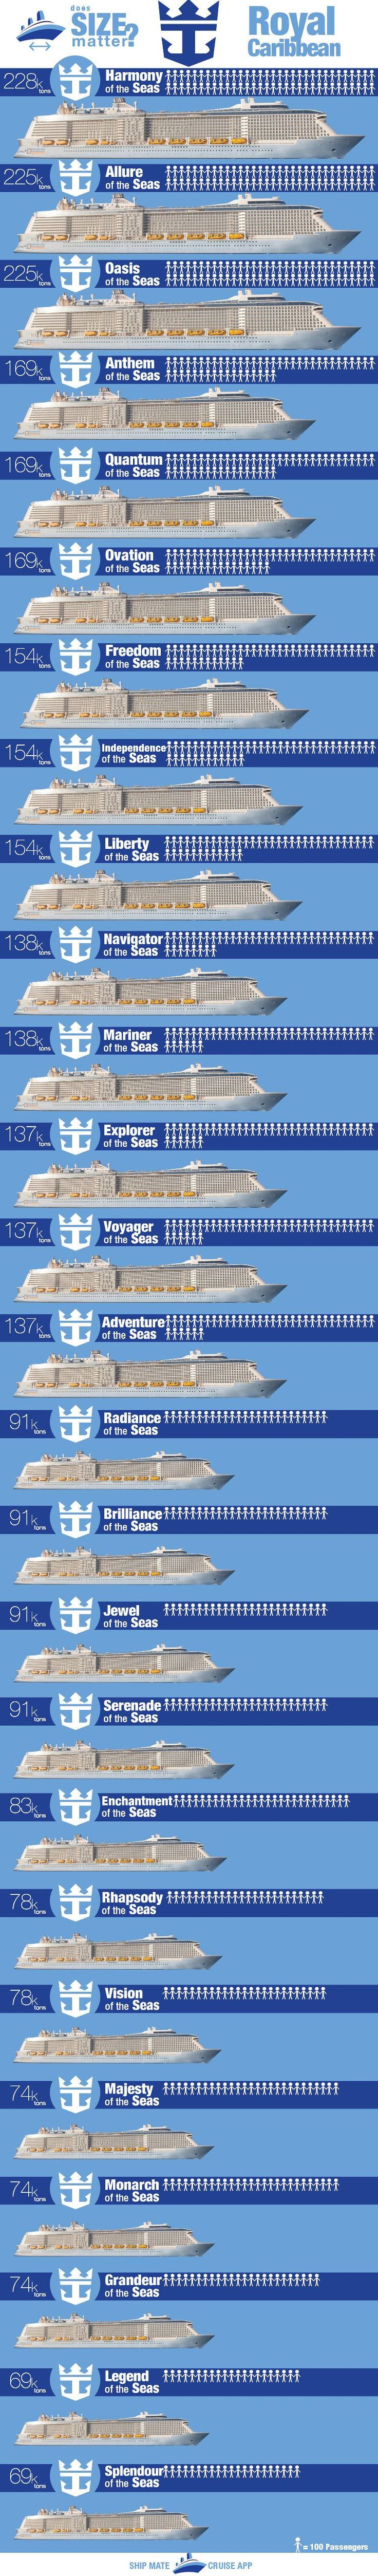 Royal Caribbean Ships by Size Infograph